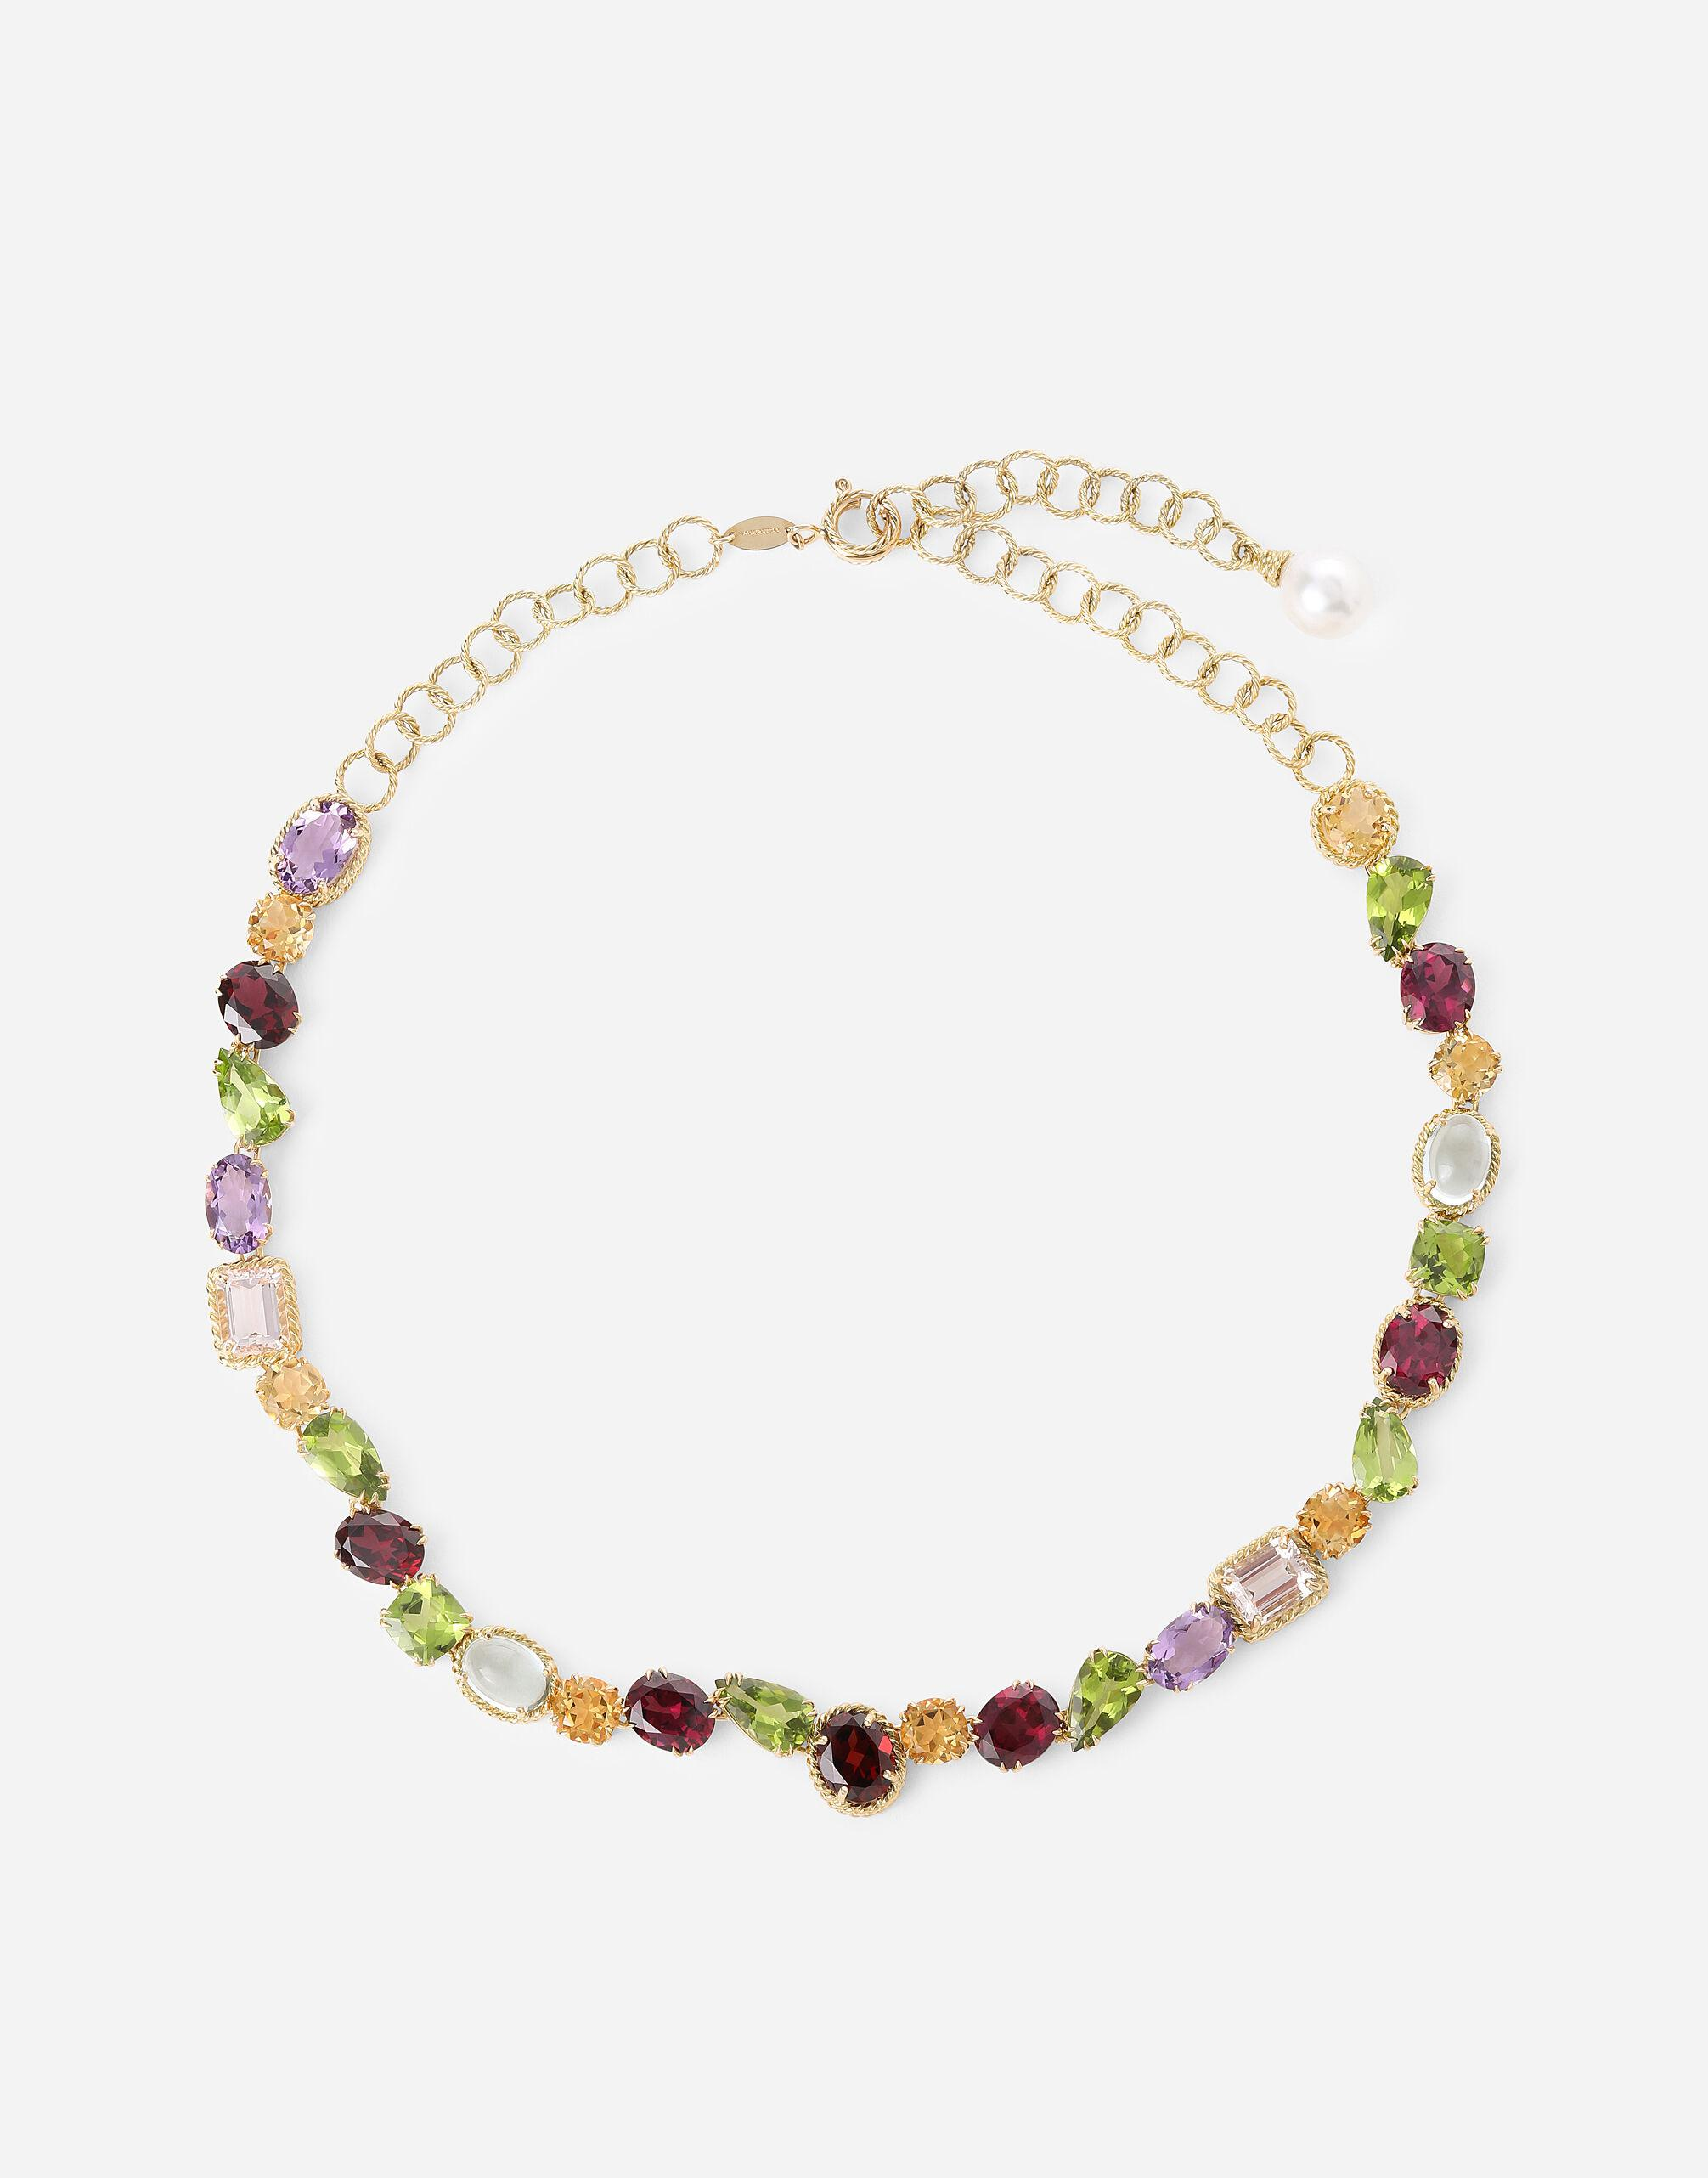 Anna necklace in yellow 18kt gold with different multicoulour gemstones